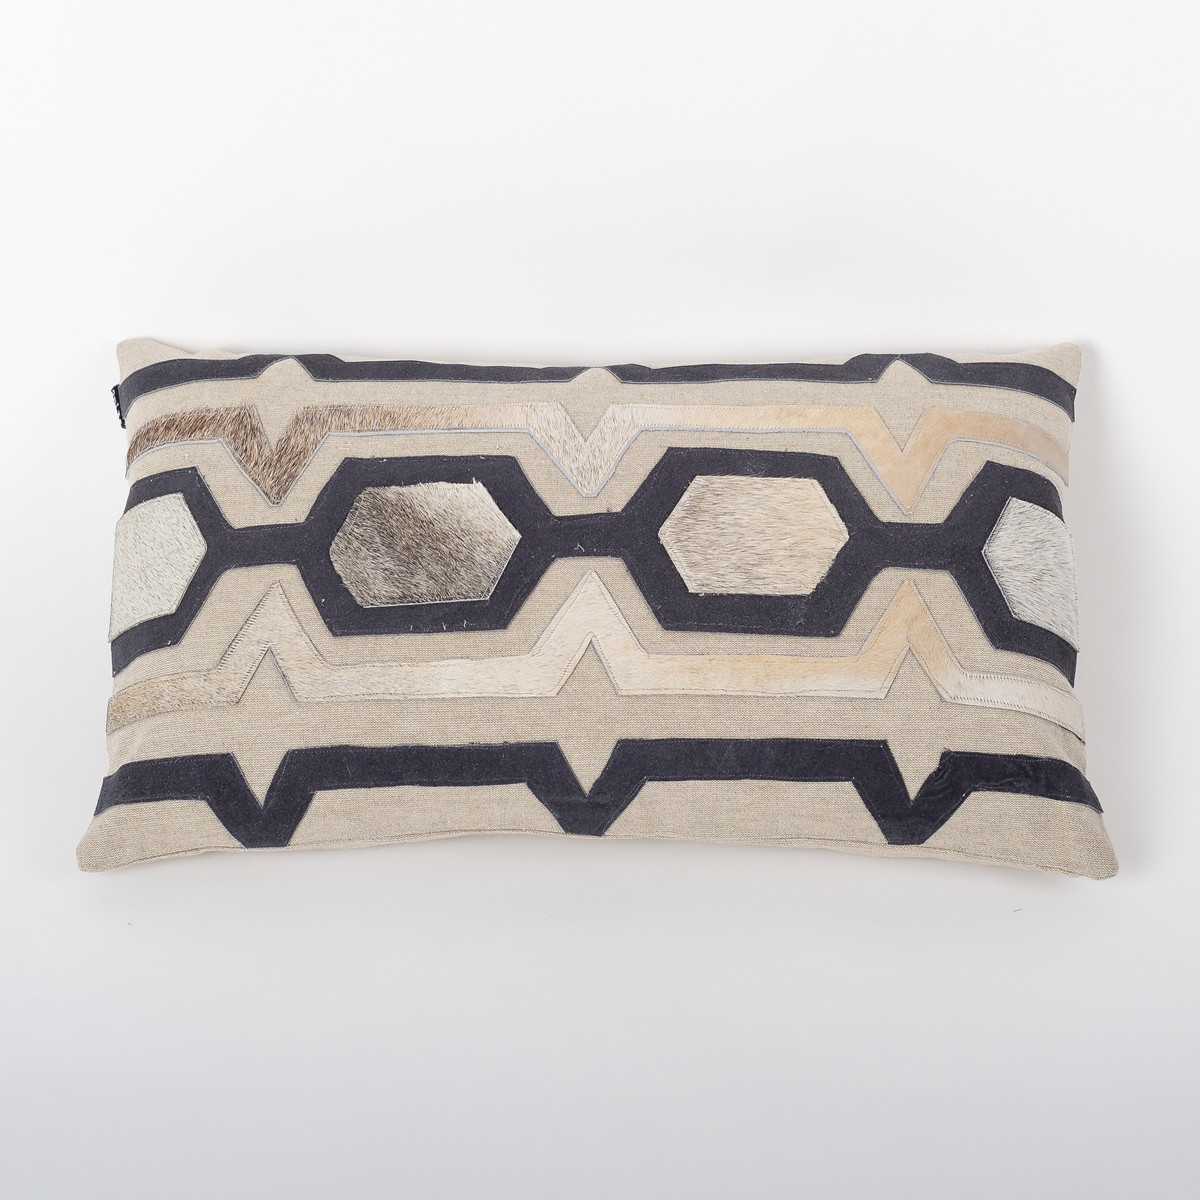 Wheat Cotton Rectangle Cushion Cover with Suede & Leather Cut Work Front